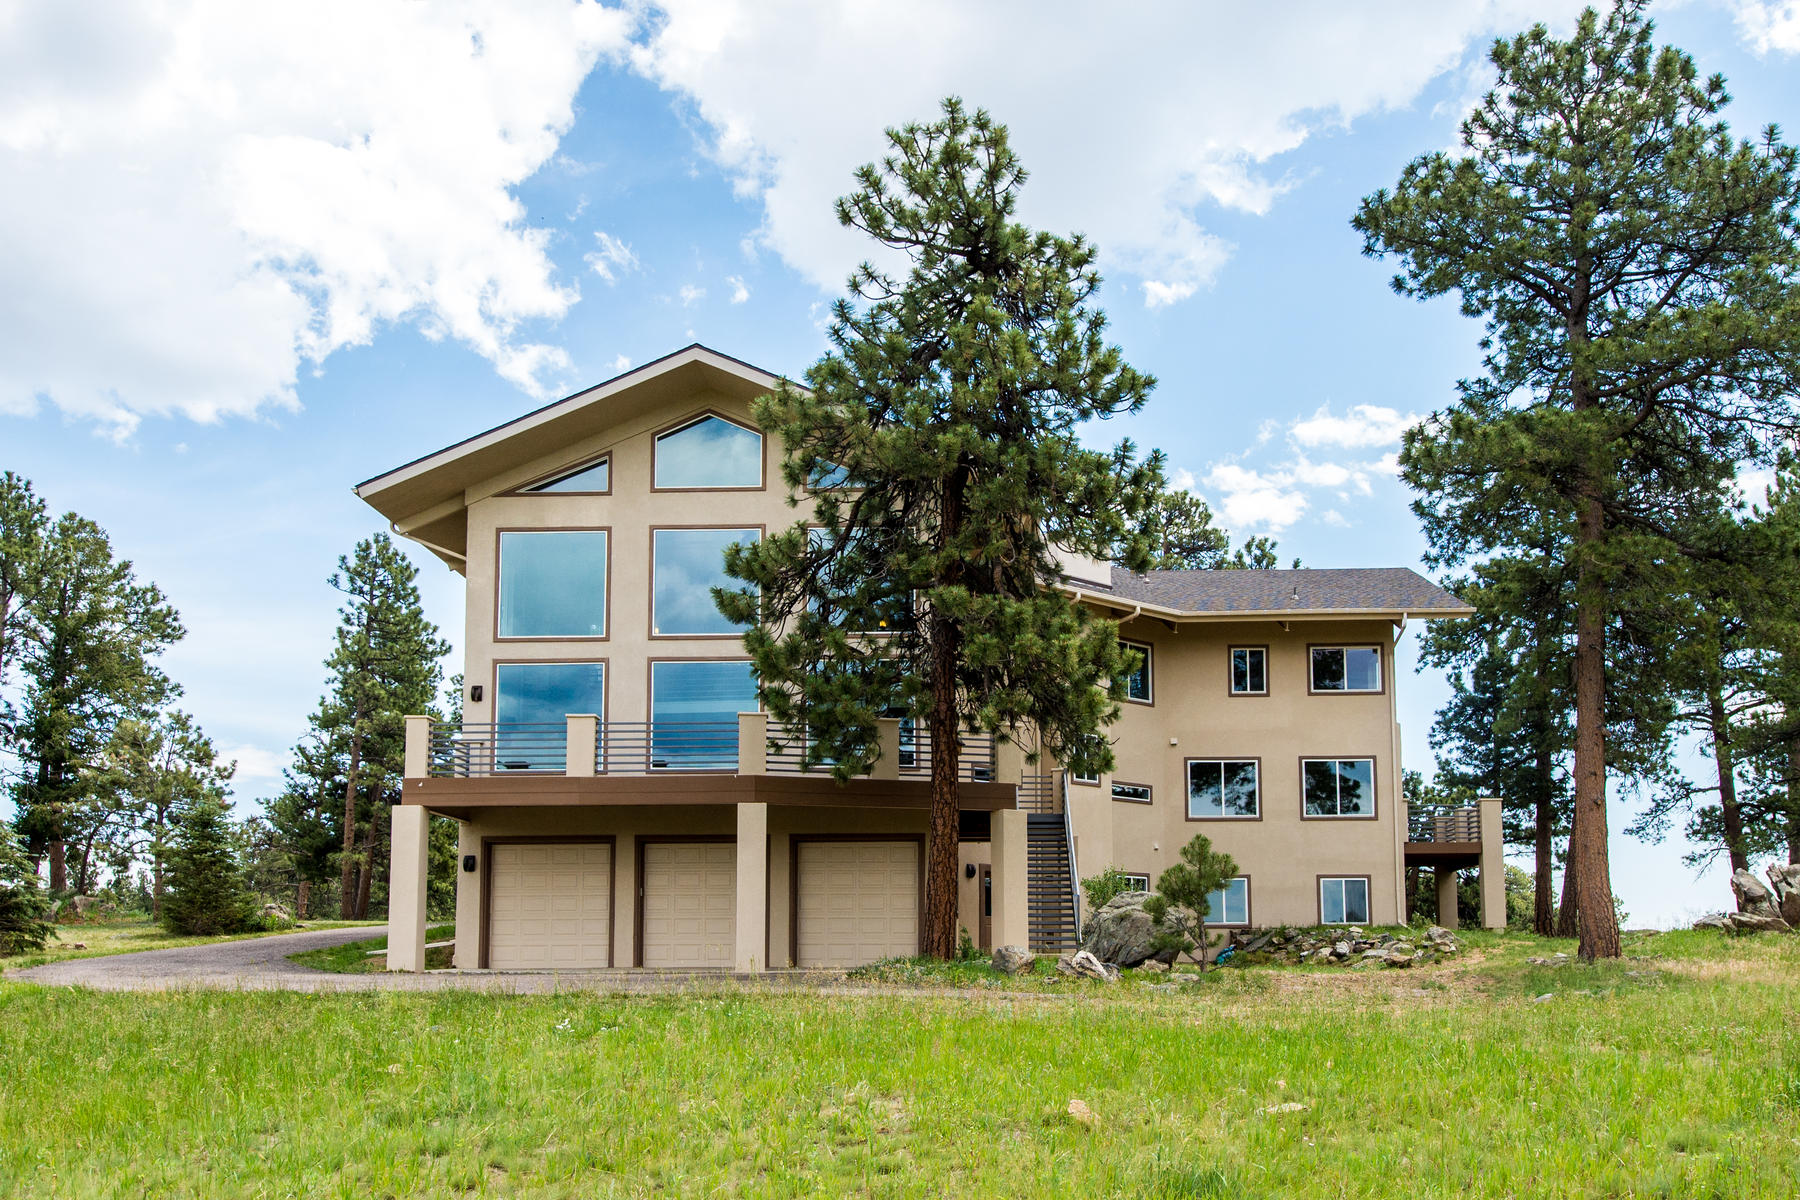 Single Family Home for Sale at Open Floor Plan with Stunning Mt Evans Views 1523 Copper Rose Drive Golden, Colorado 80401 United States